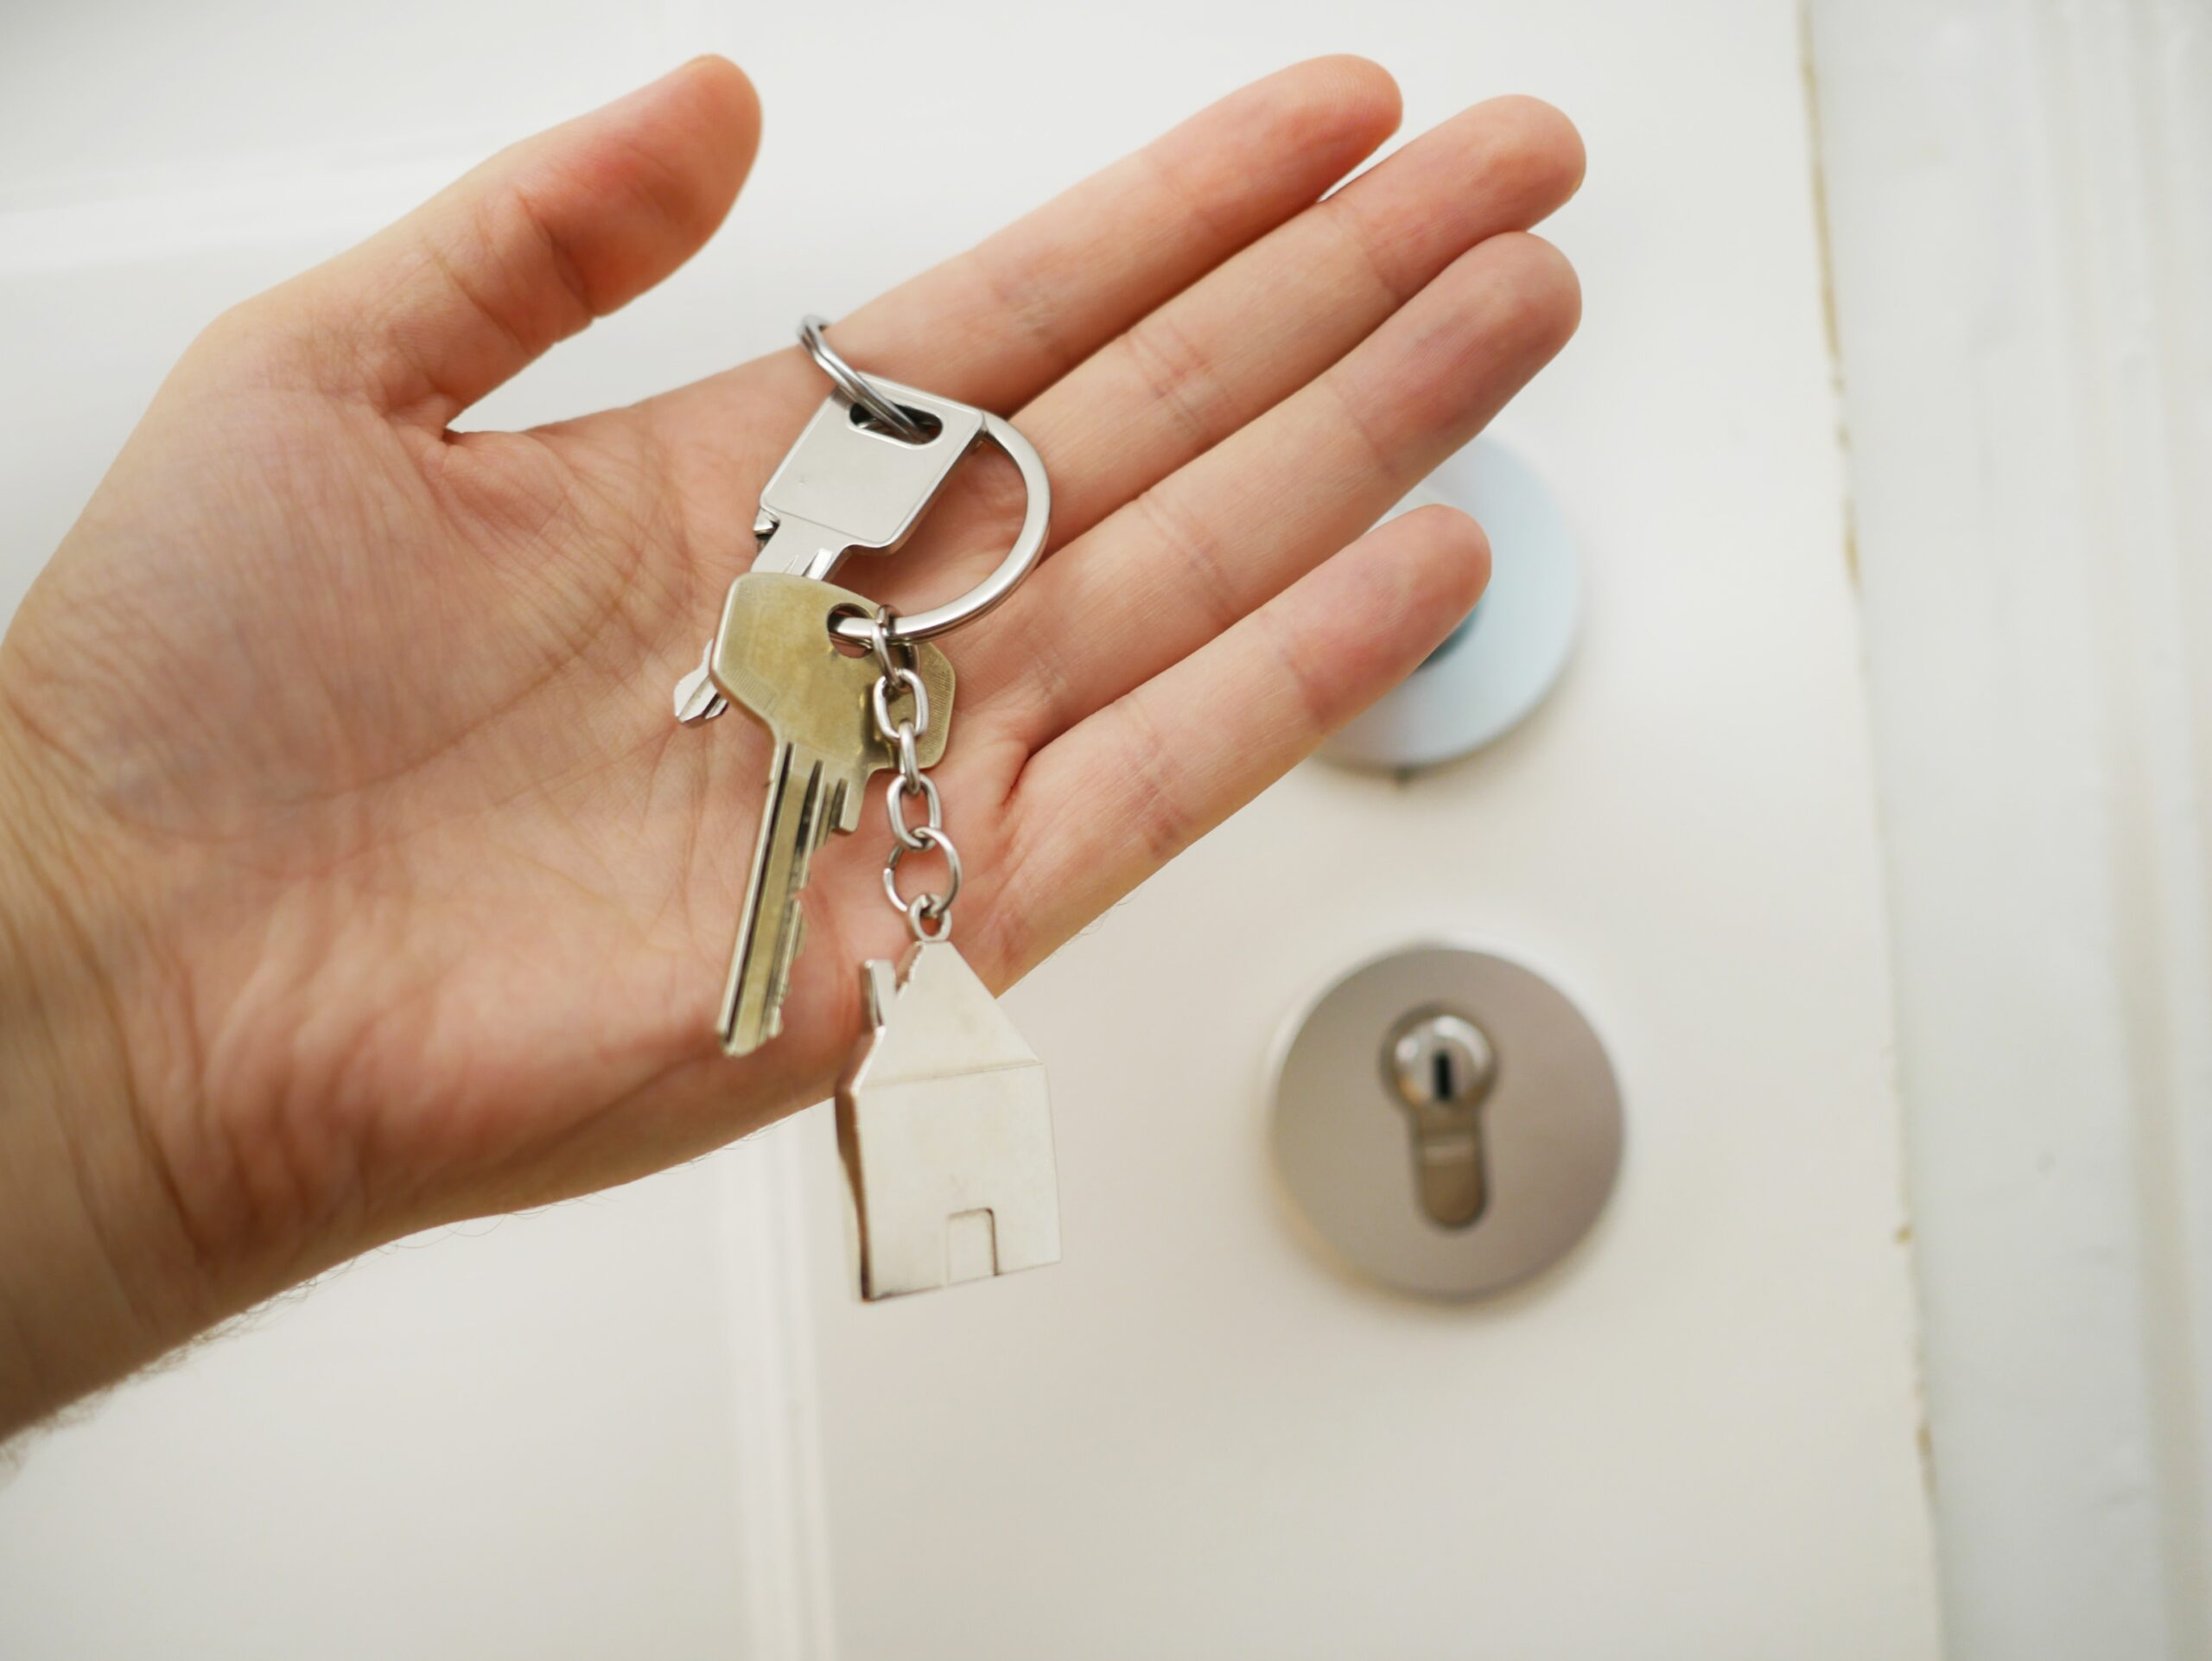 What Are the Tax Advantages of Home Ownership?